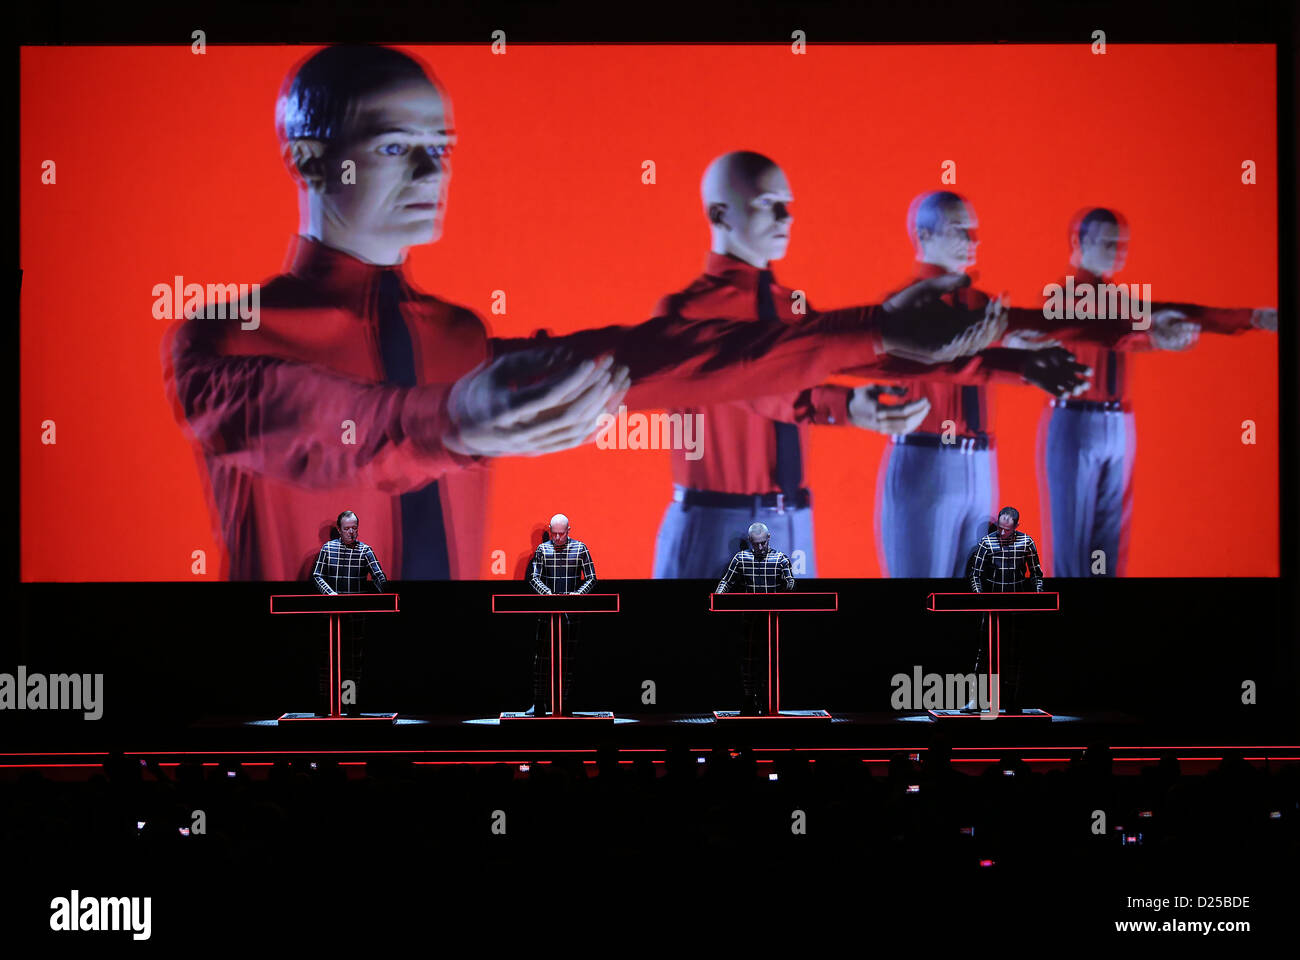 The members of the German electronic band Kraftwerk perform on stage at the arts exhibition venue 'Kunstsammlung Stock Photo